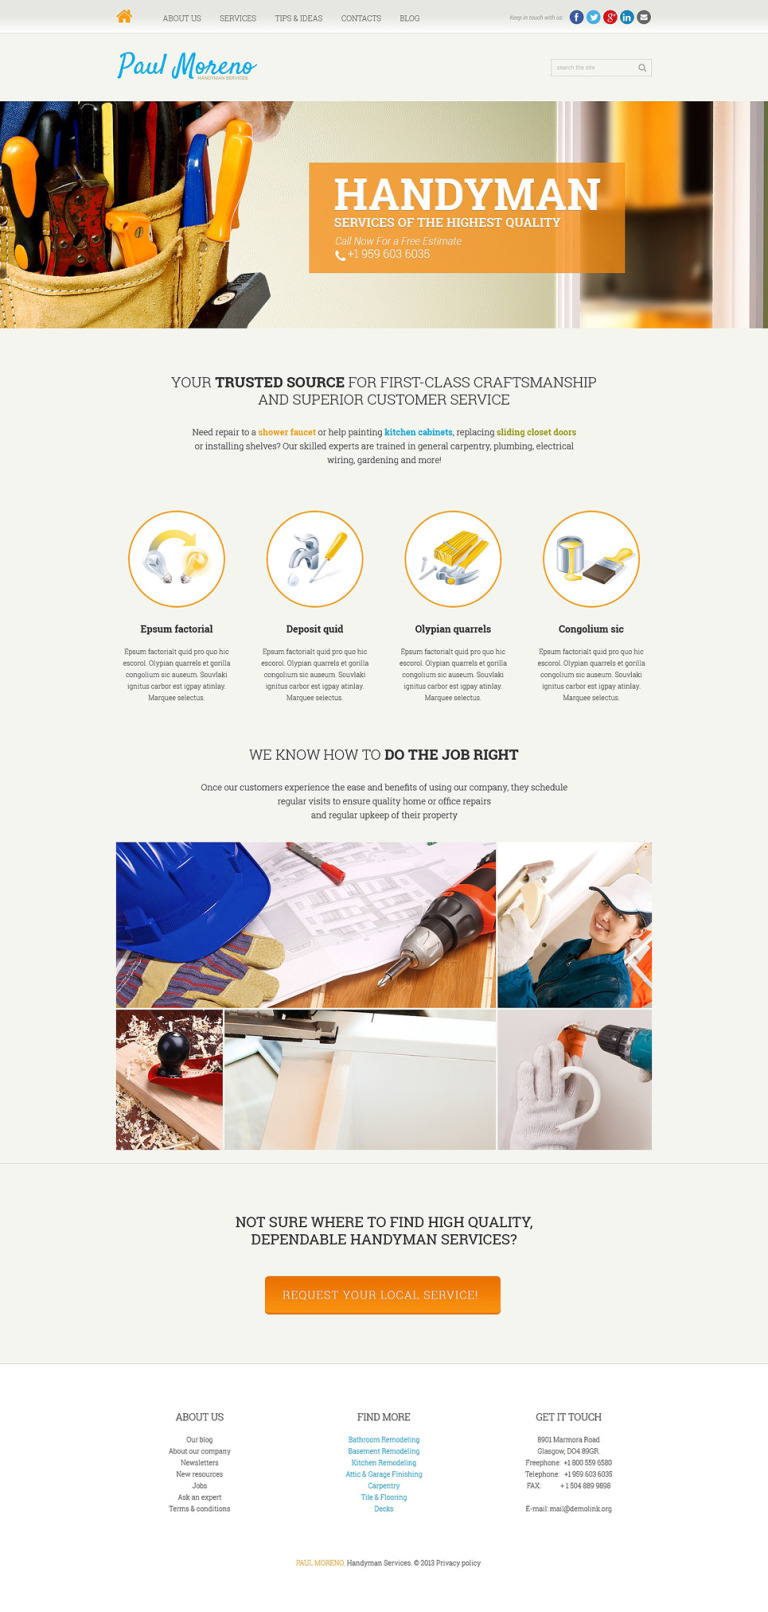 Proper Handyman Services Joomla Template New Screenshots BIG